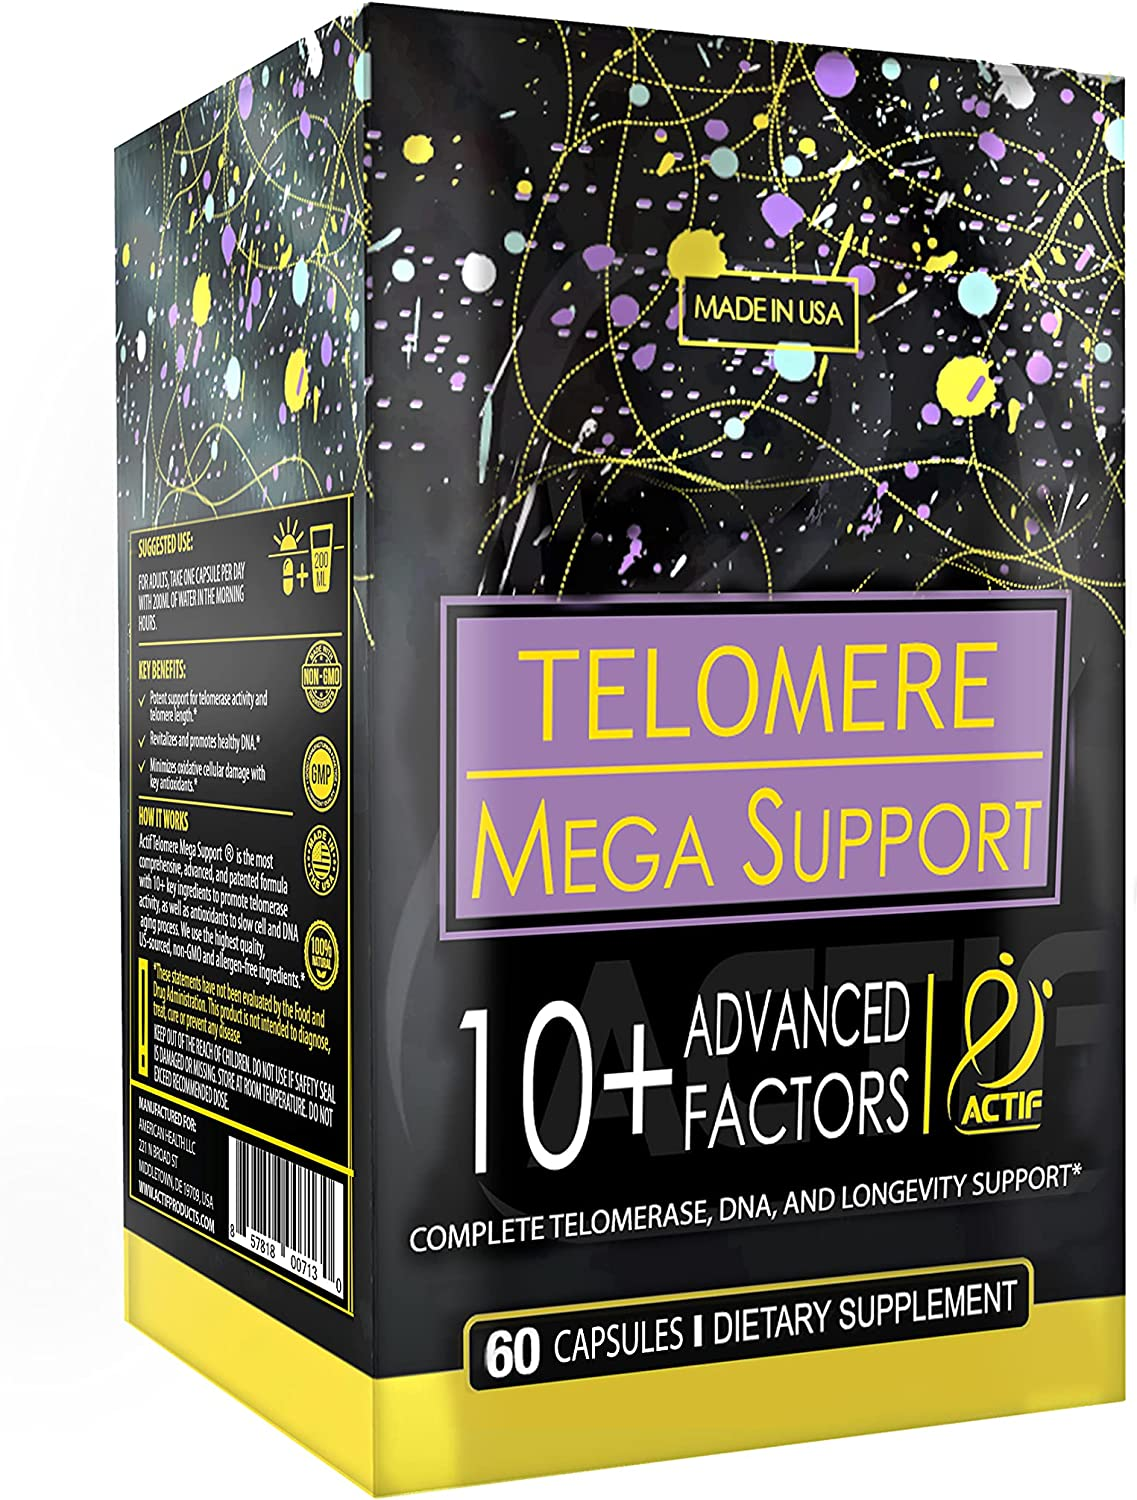 Actif Telomere Mega Support mart with 10+ Non-GMO Energ OFFicial site for Factors